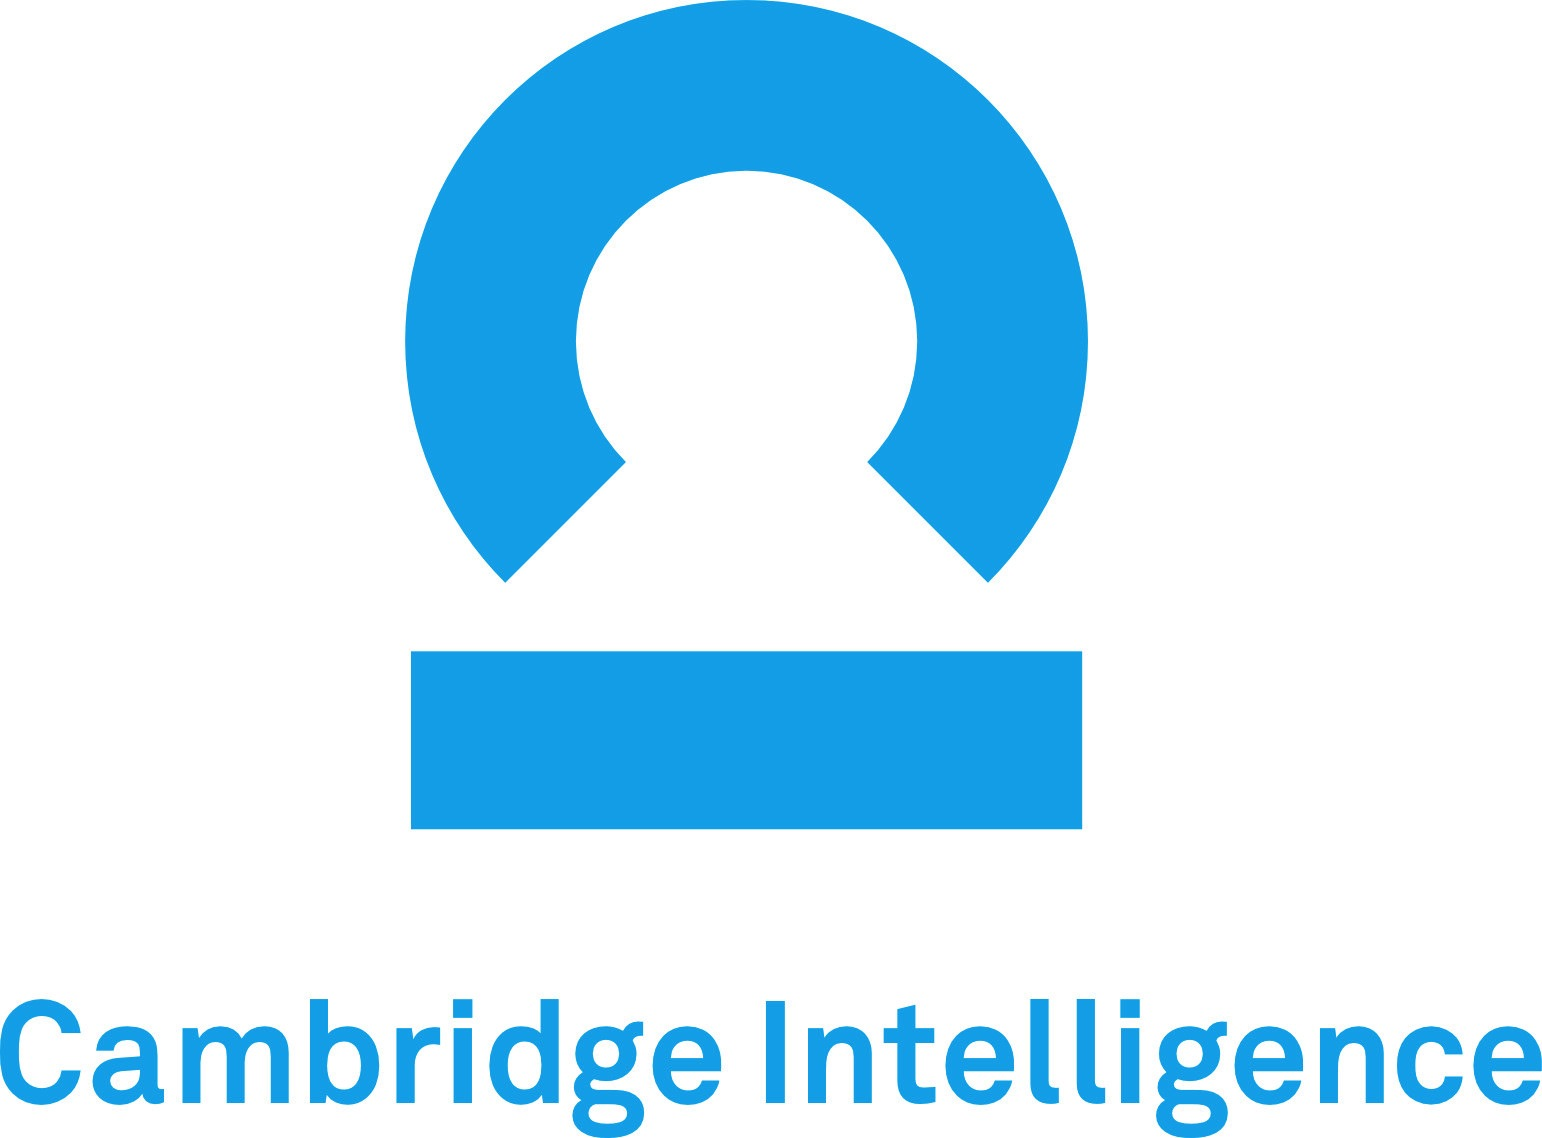 Cambridge Intelligence logo